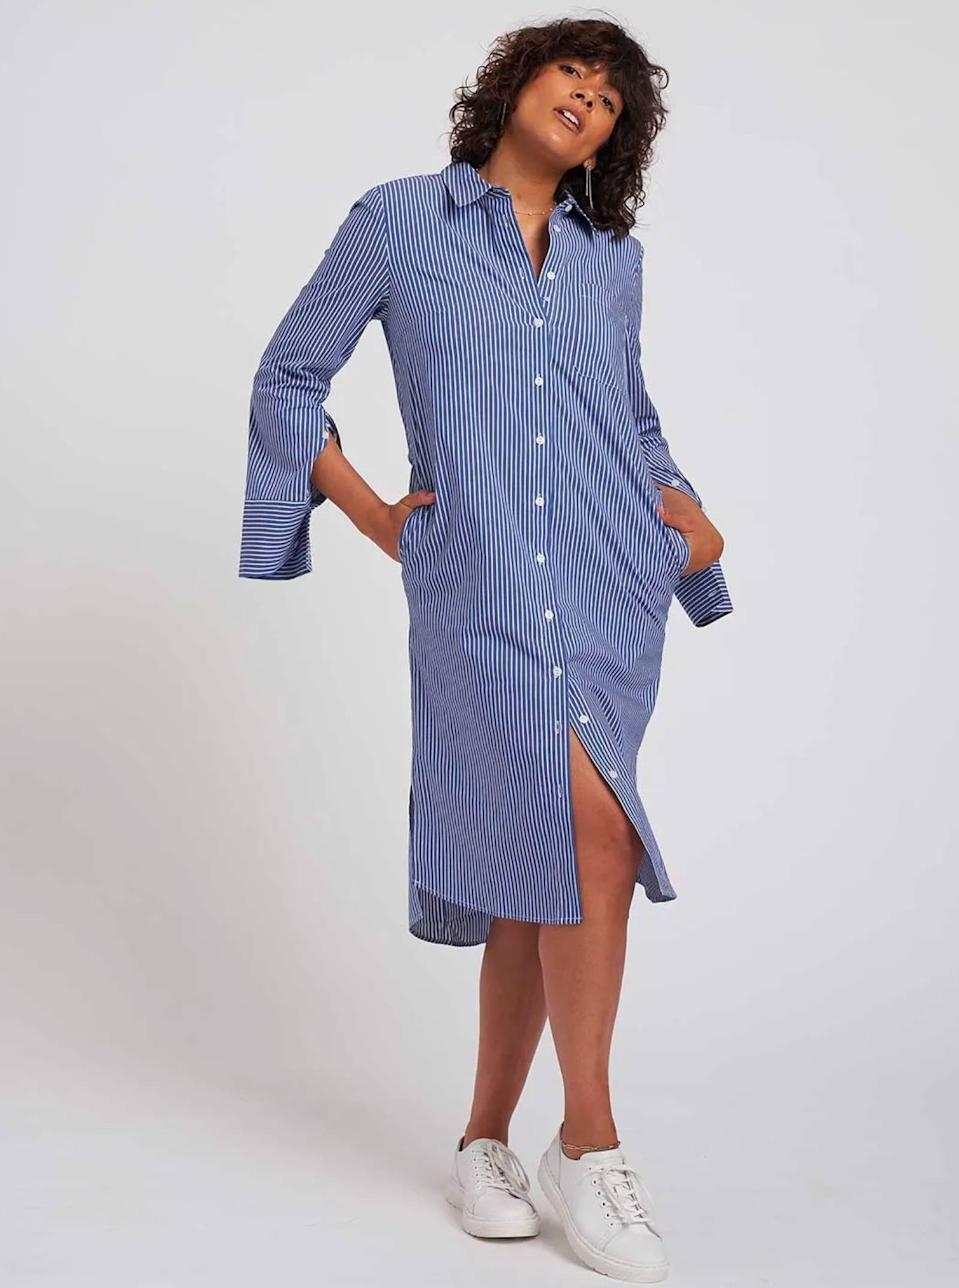 """Back in the office? Your work wardrobe isn't complete without a solid button-down dress. $128, Universal Standard. <a href=""""https://www.universalstandard.com/products/peyton-poplin-shirt-dress-blue-white-stripe"""" rel=""""nofollow noopener"""" target=""""_blank"""" data-ylk=""""slk:Get it now!"""" class=""""link rapid-noclick-resp"""">Get it now!</a>"""